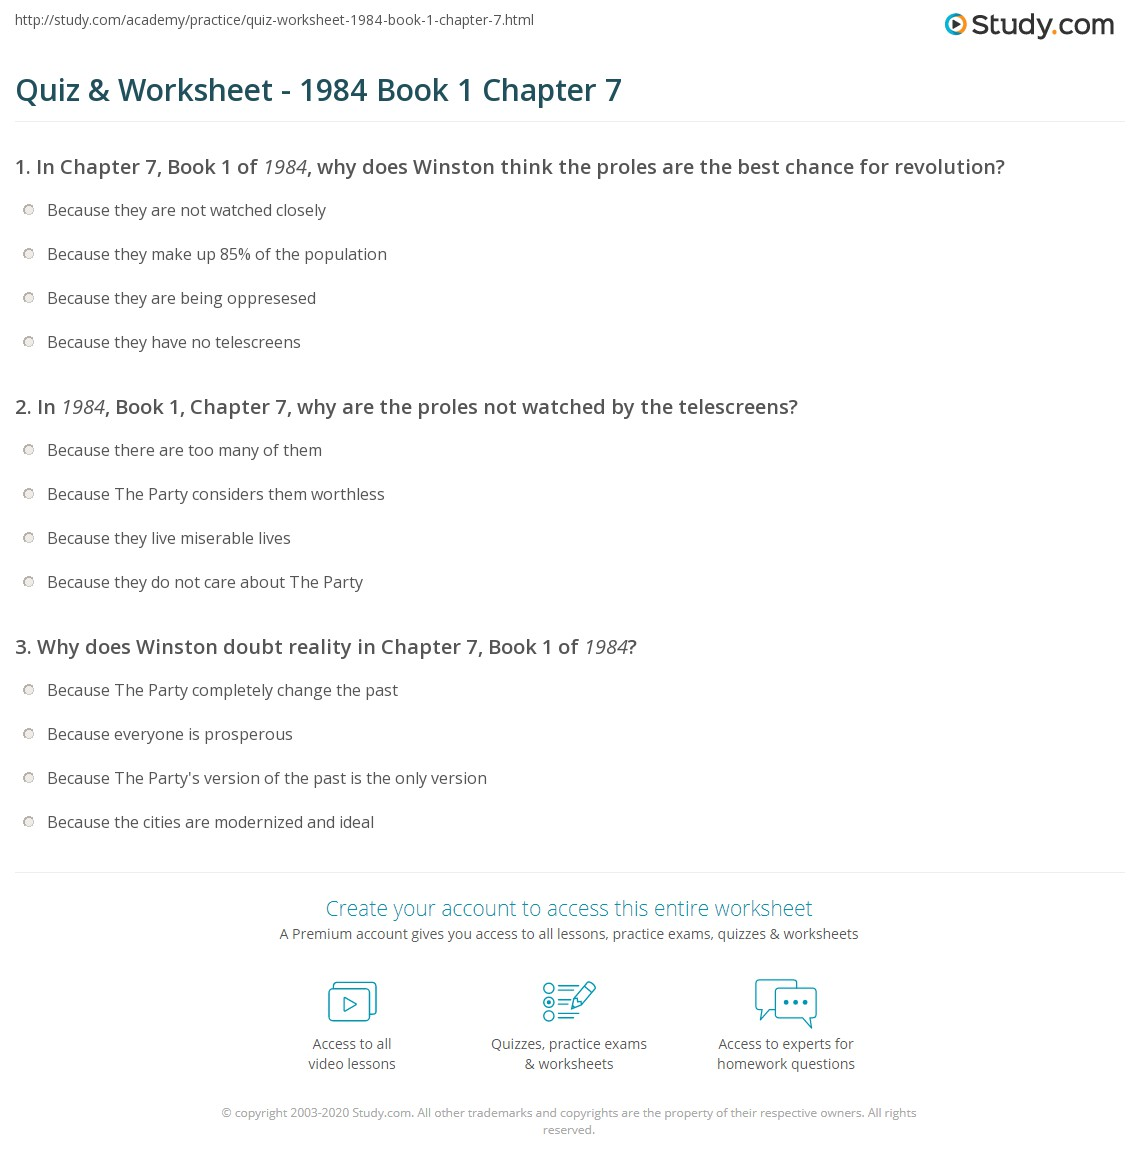 quiz worksheet 1984 book 1 chapter 7 study com rh study com study guide answers for 1984 by george orwell Fahrenheit 451 Study Guide Answers